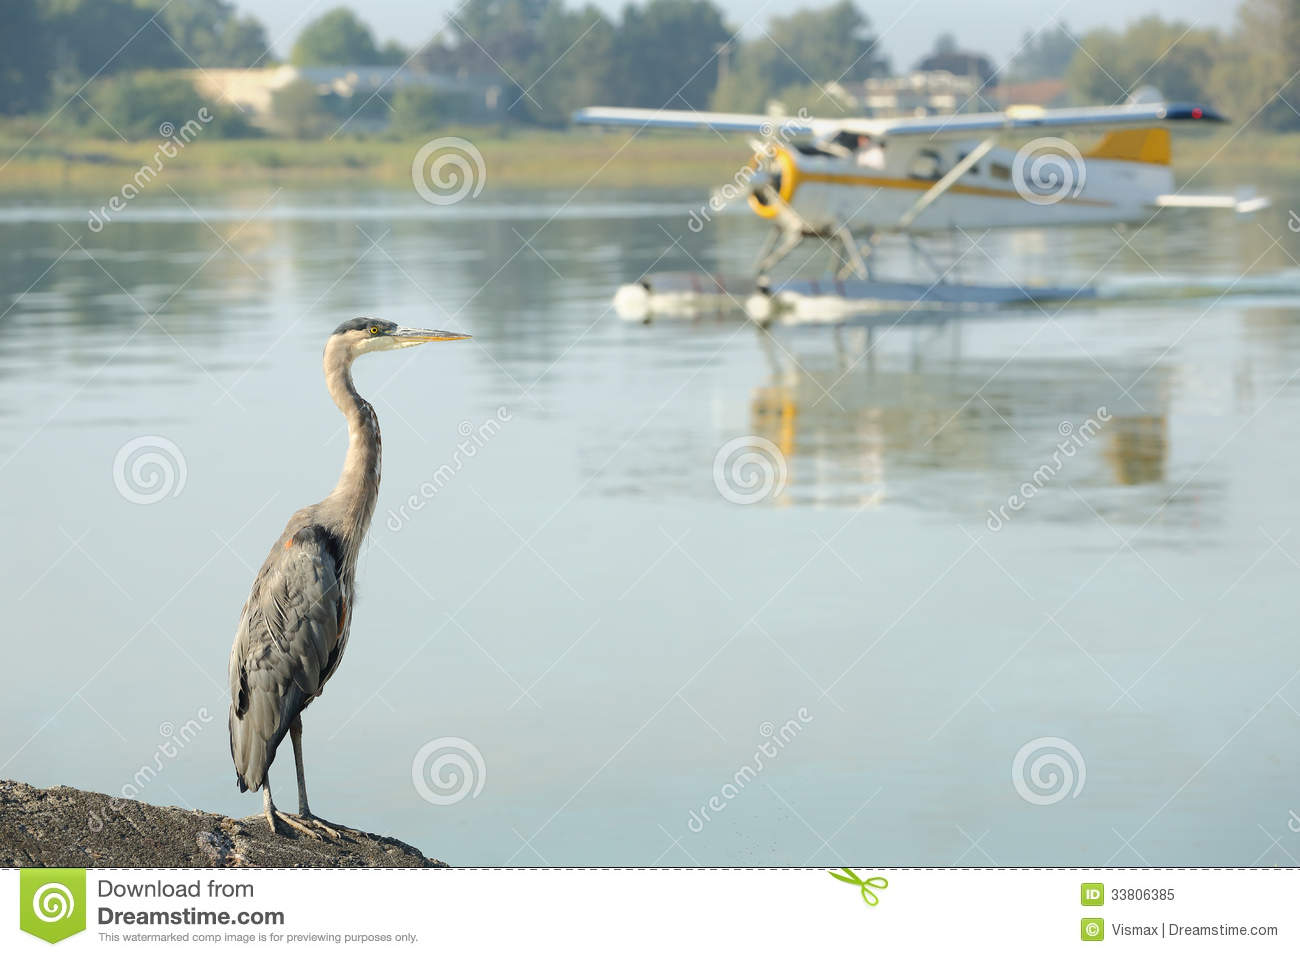 Floatplane And Heron Yvr Richmond Bc Royalty Free Stock Photo Image 33806385